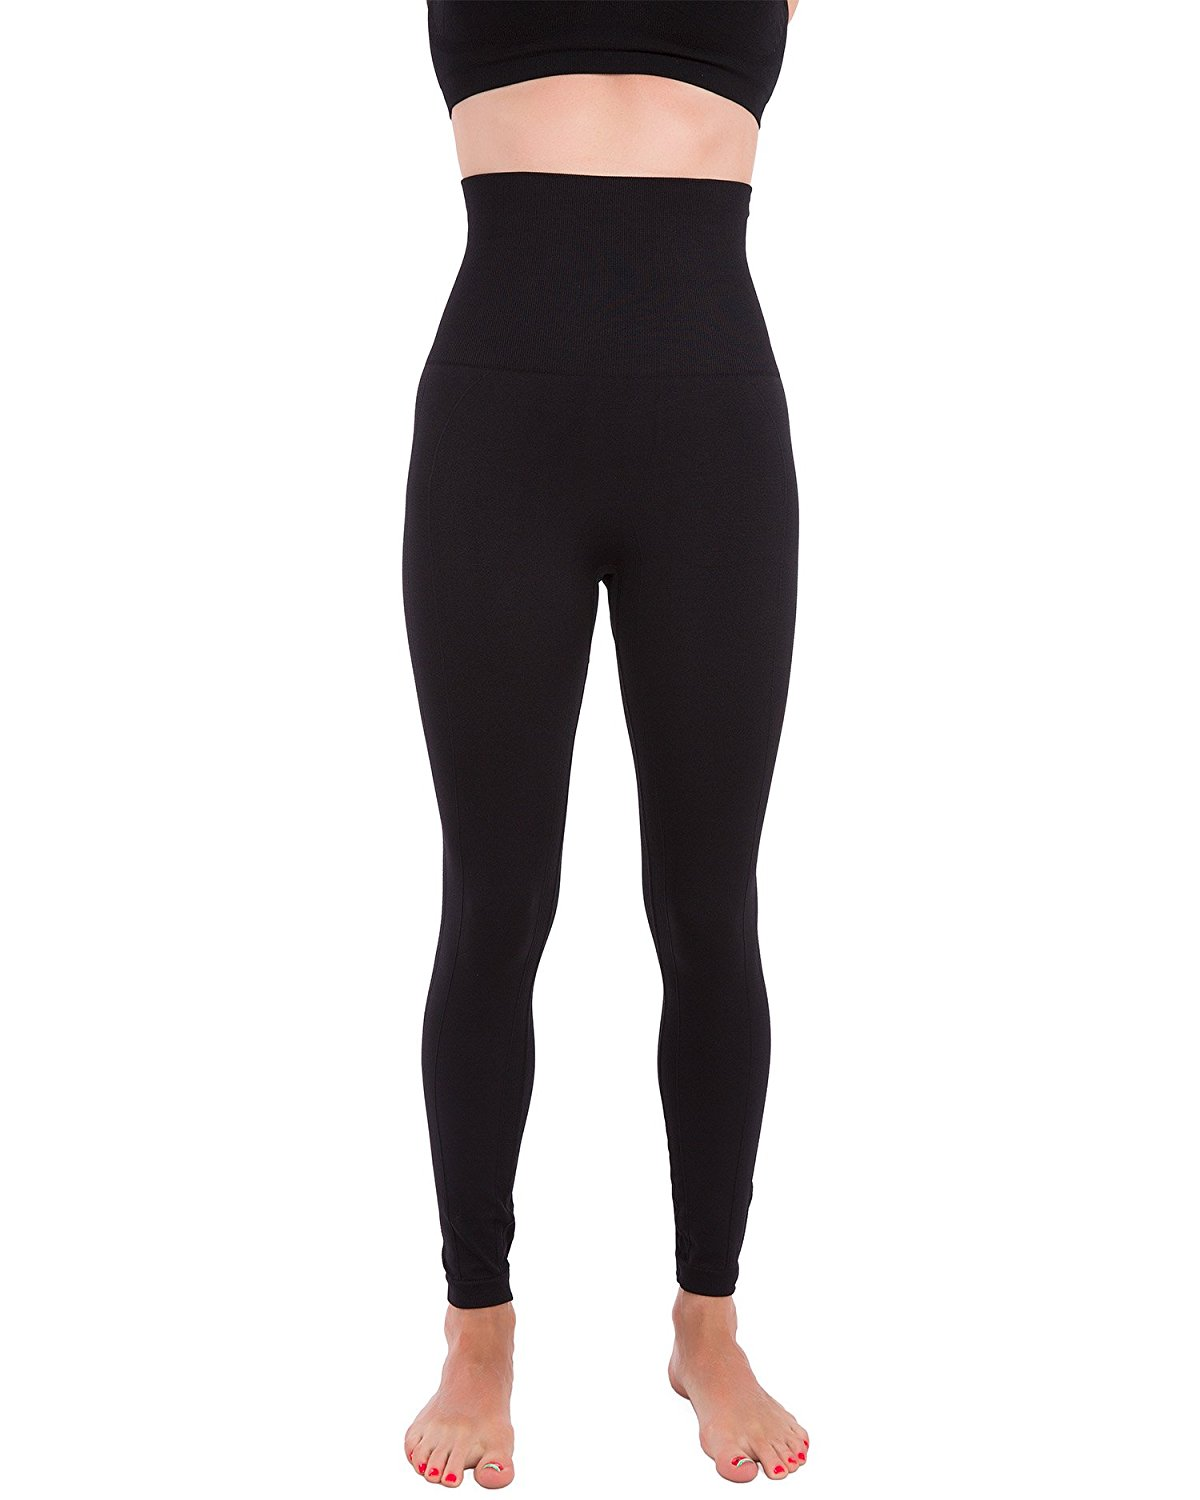 7e3568a0a8465b Get Quotations · Homma Premium Thick High Waist Tummy Compression Slimming  Leggings